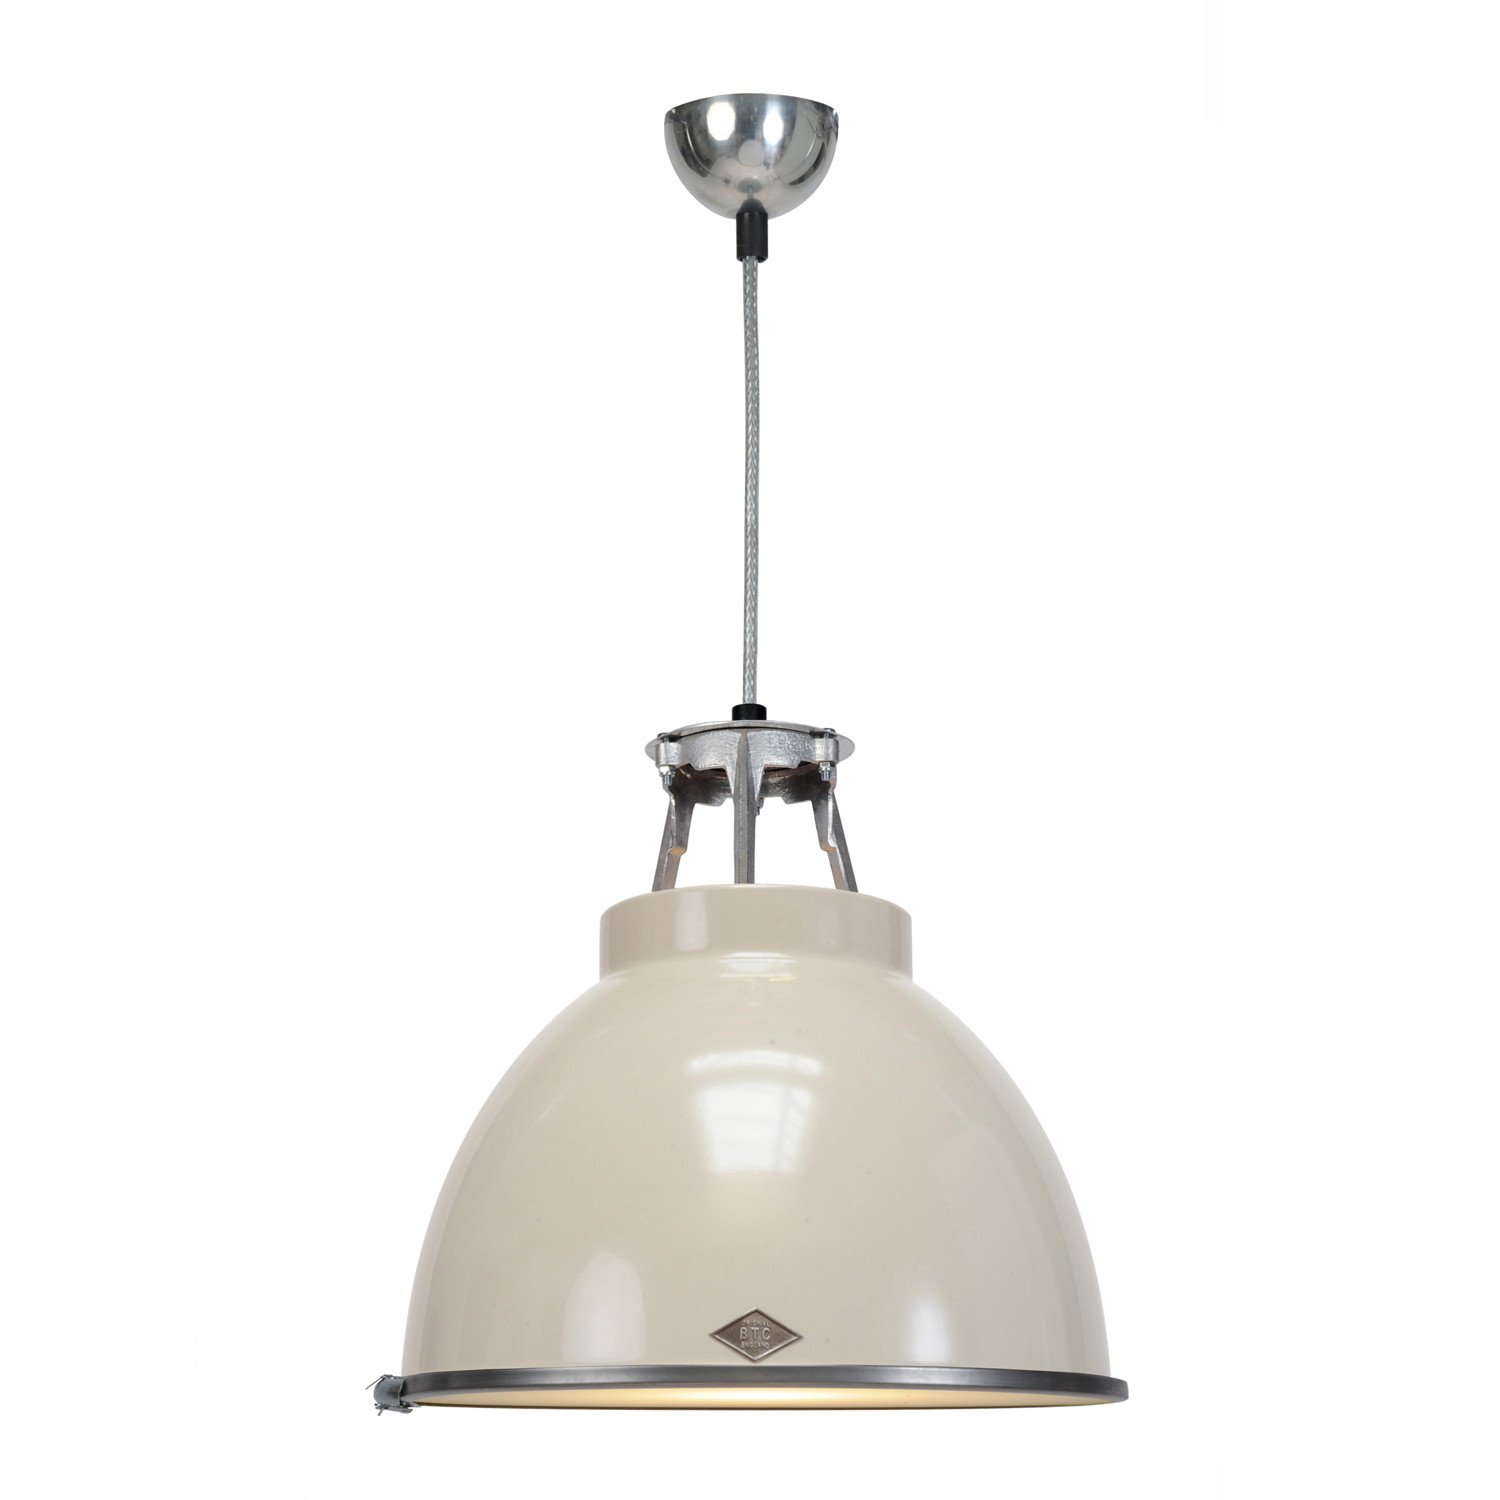 Titan Size 1 Pendant Light, Putty Grey with Etched Glass